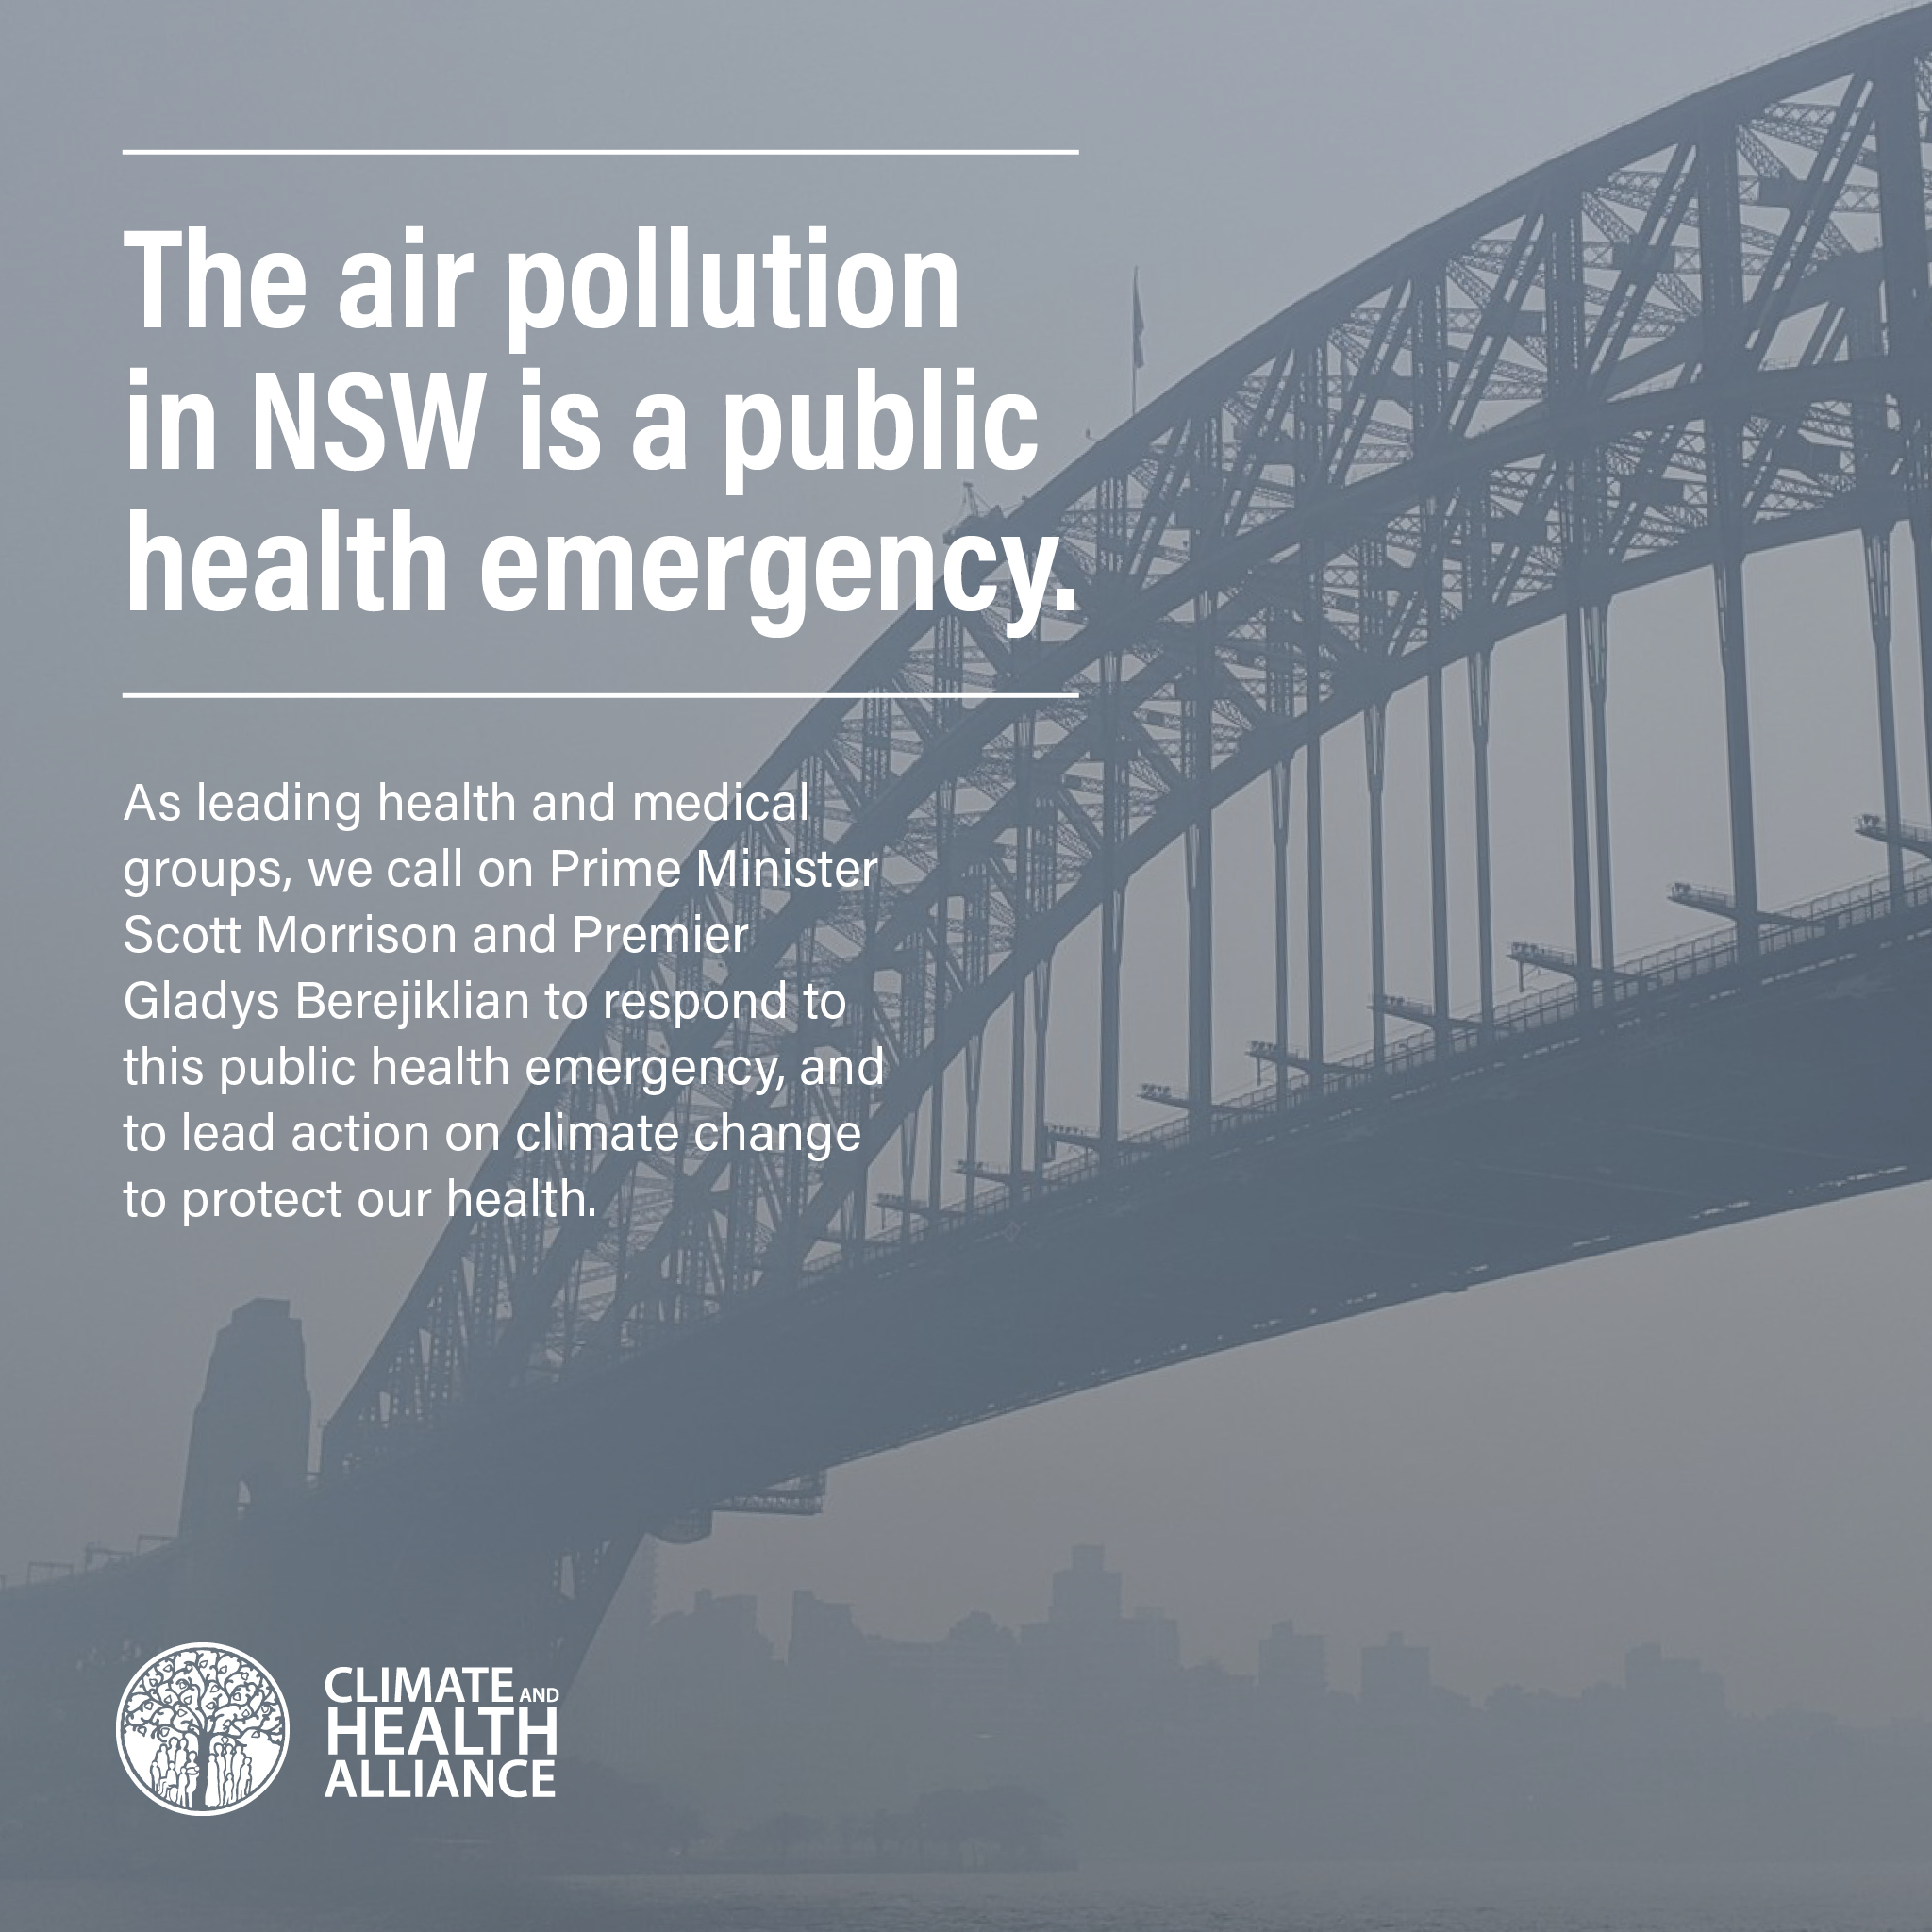 NSW air pollution is a public health emergency